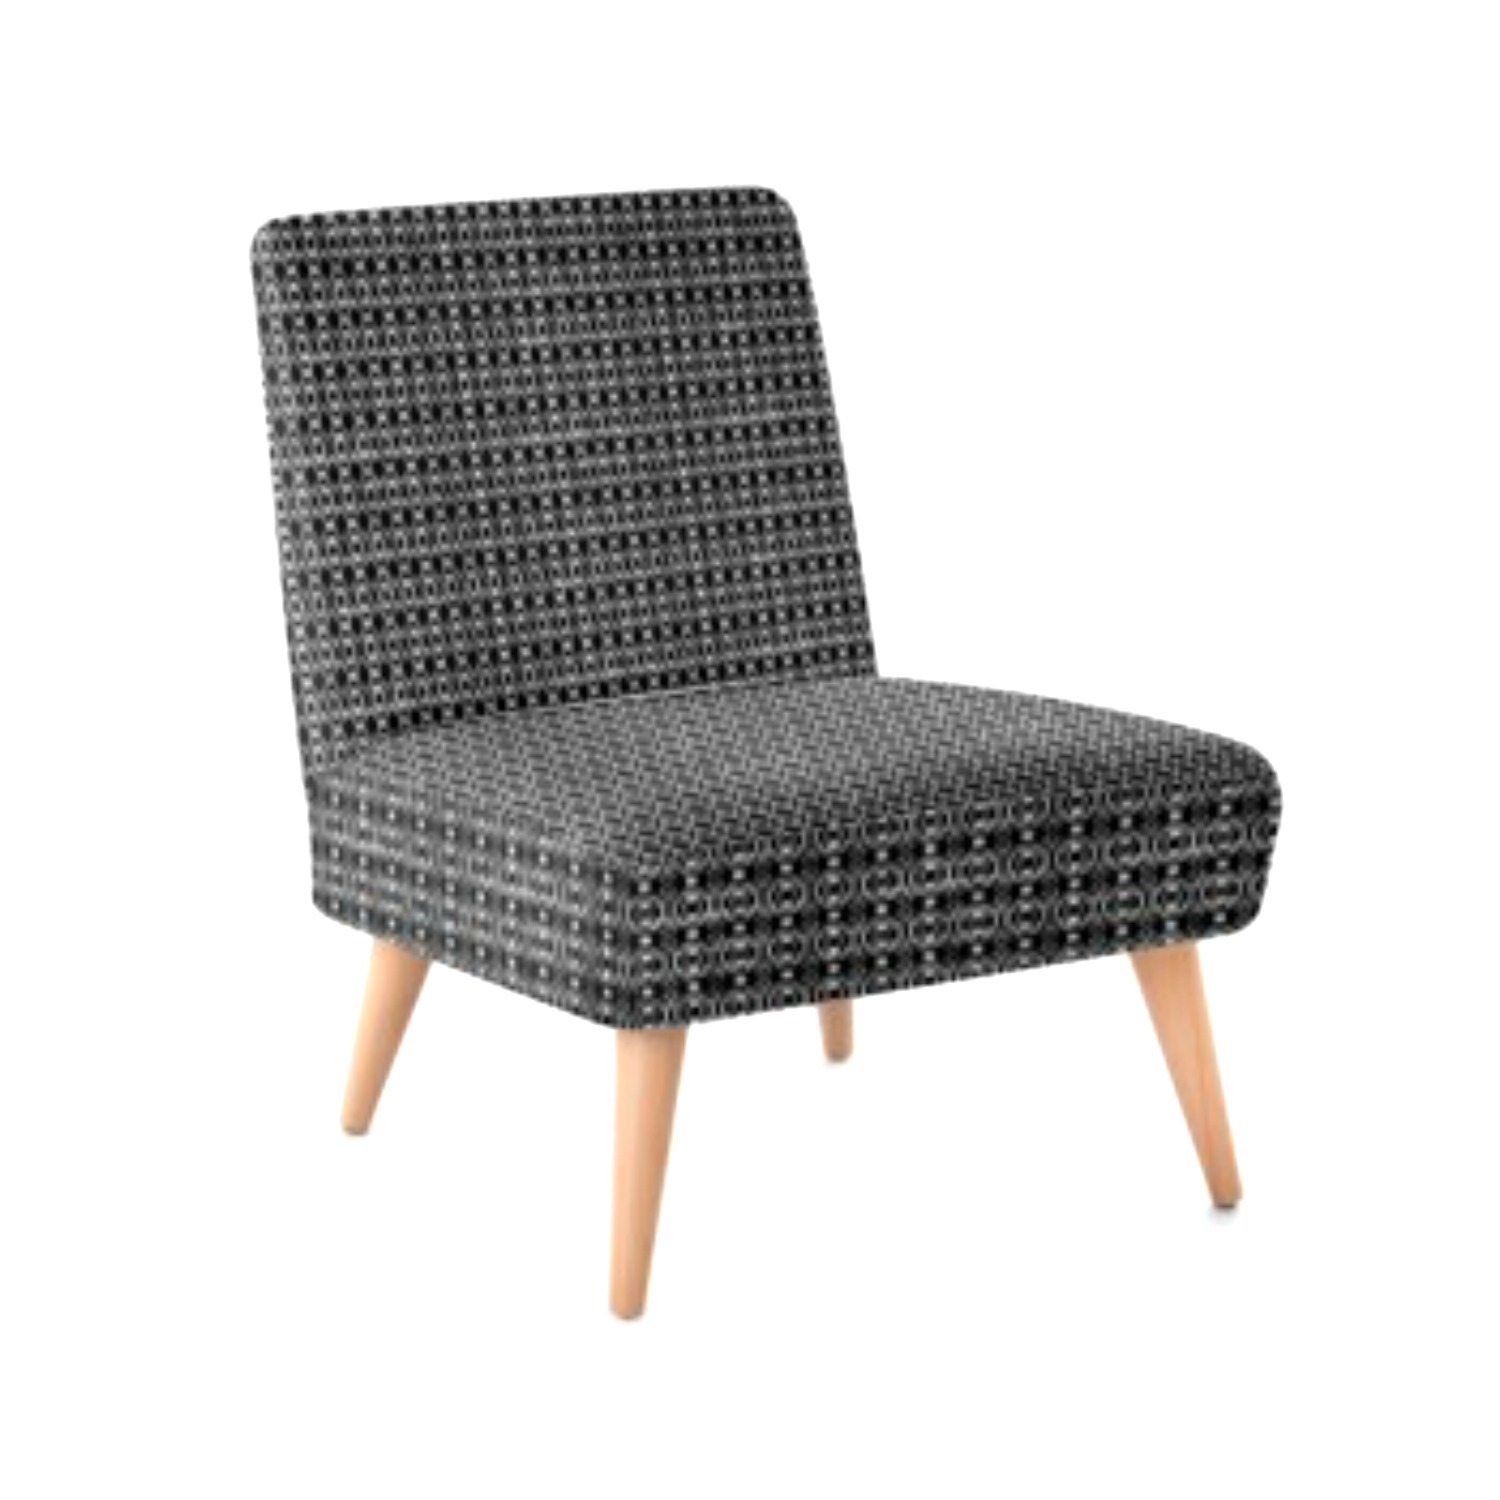 Occasional Chair - Knit Print Design